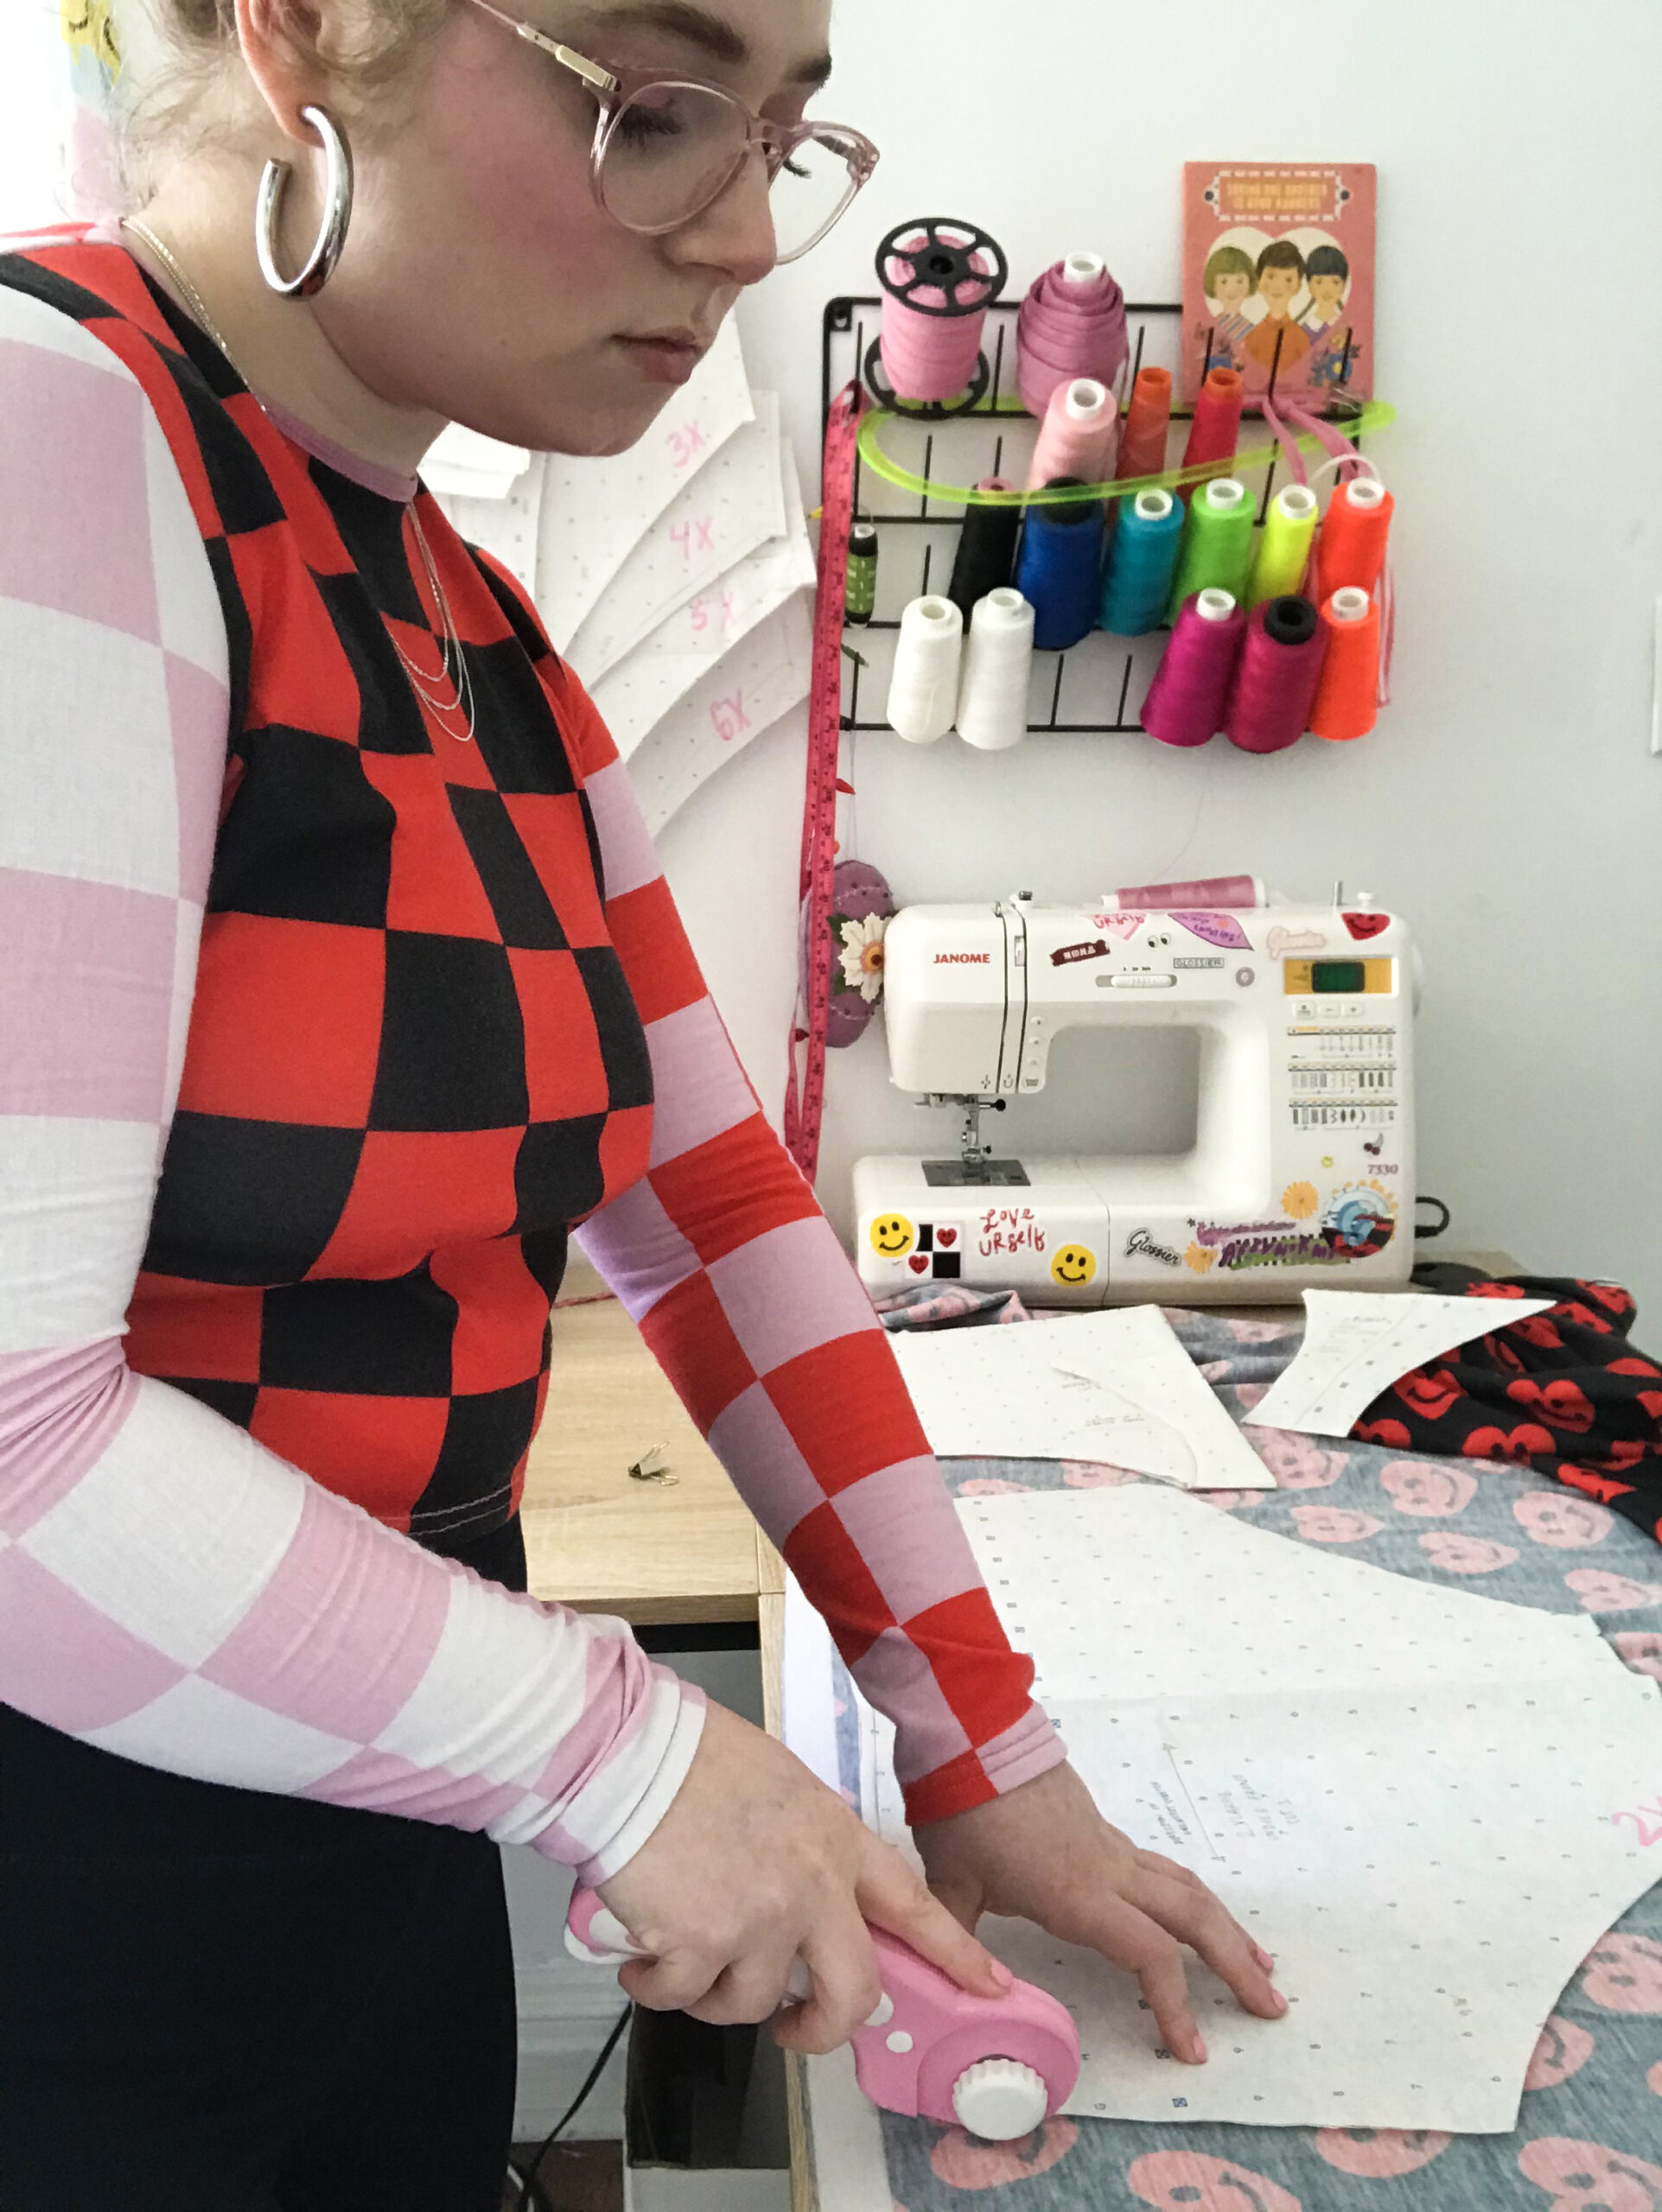 Bouncy Frown Studios founder Abby Mosse working on a pattern